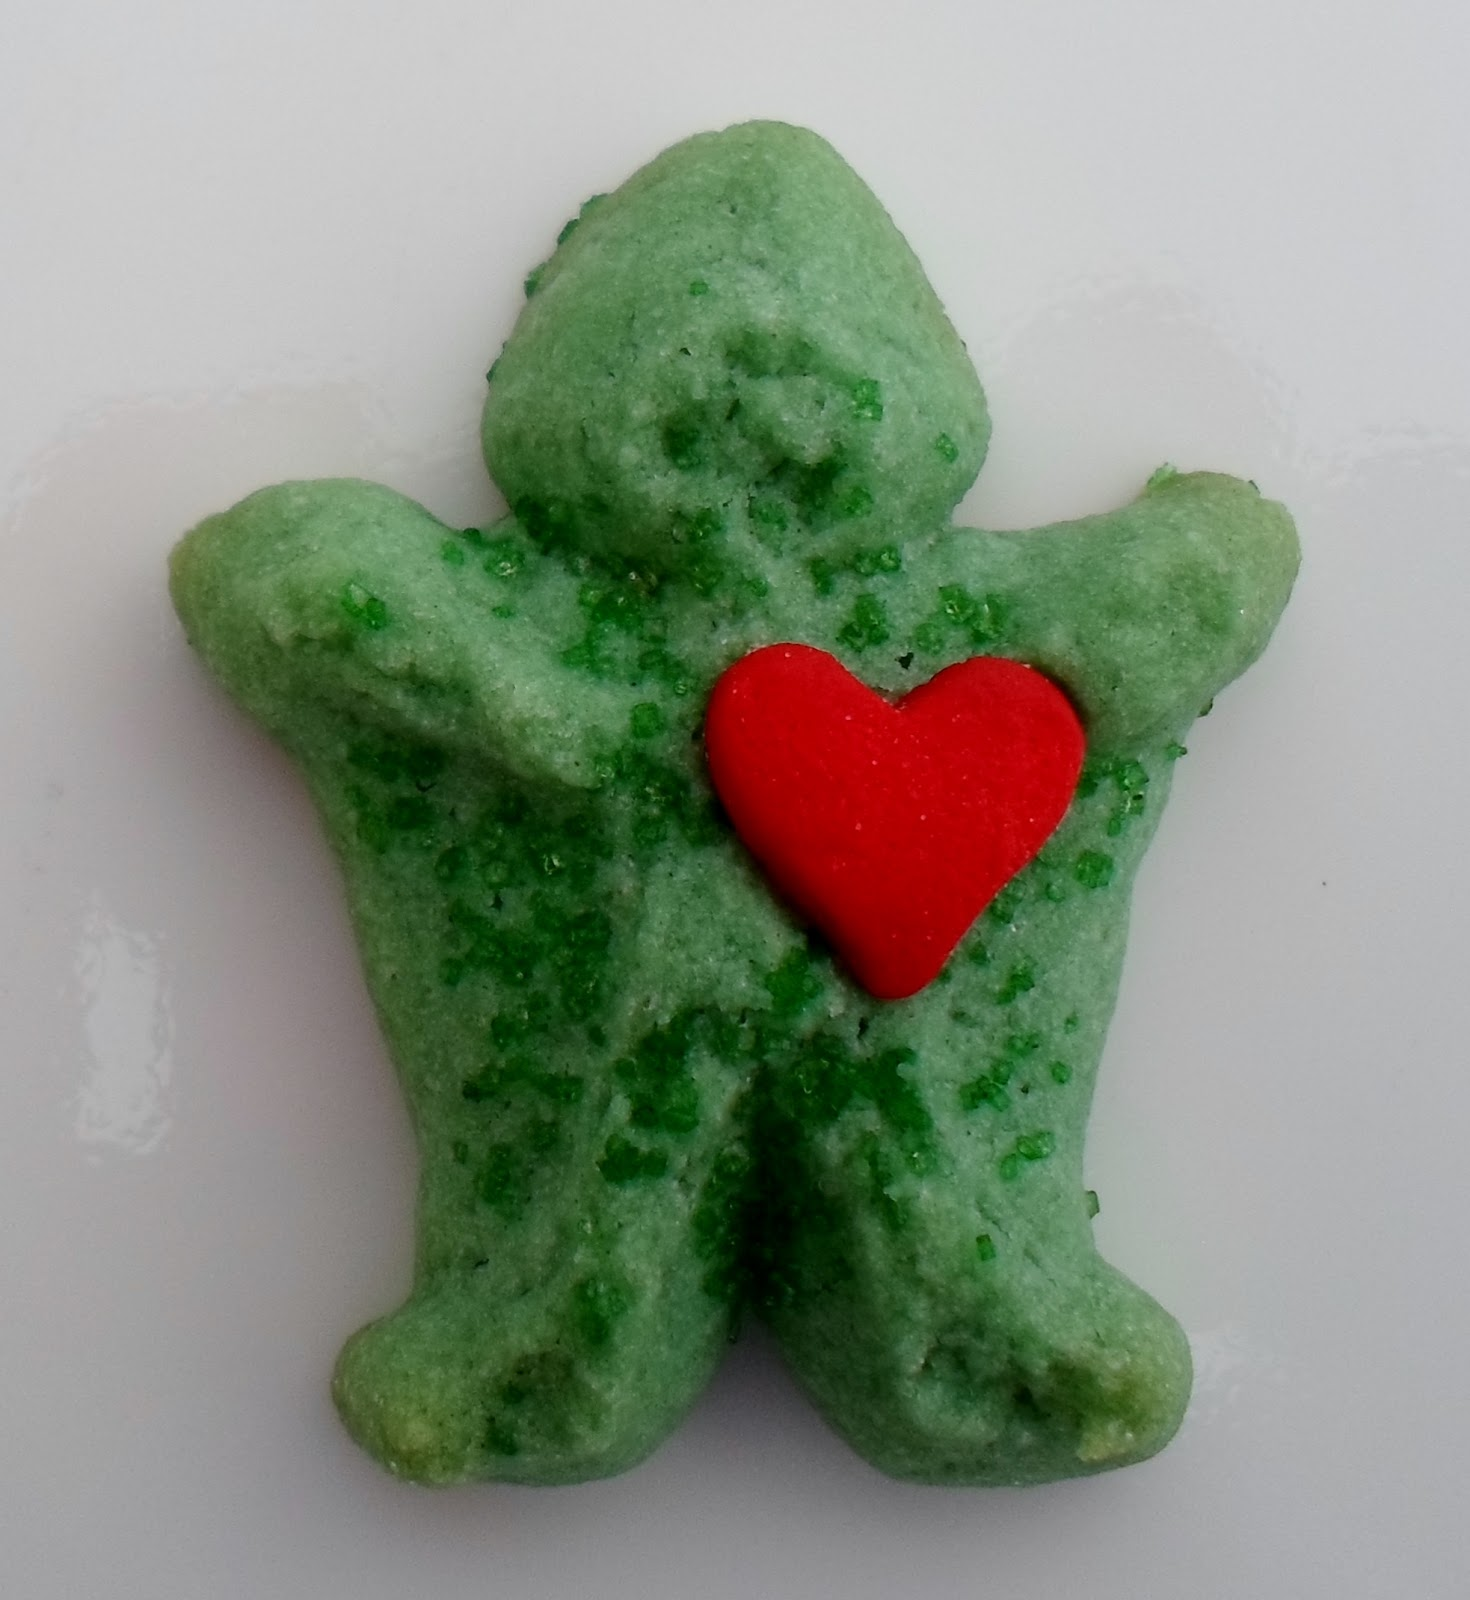 Happier Than A Pig In Mud Mr Grinch Spritz Cookies And Original